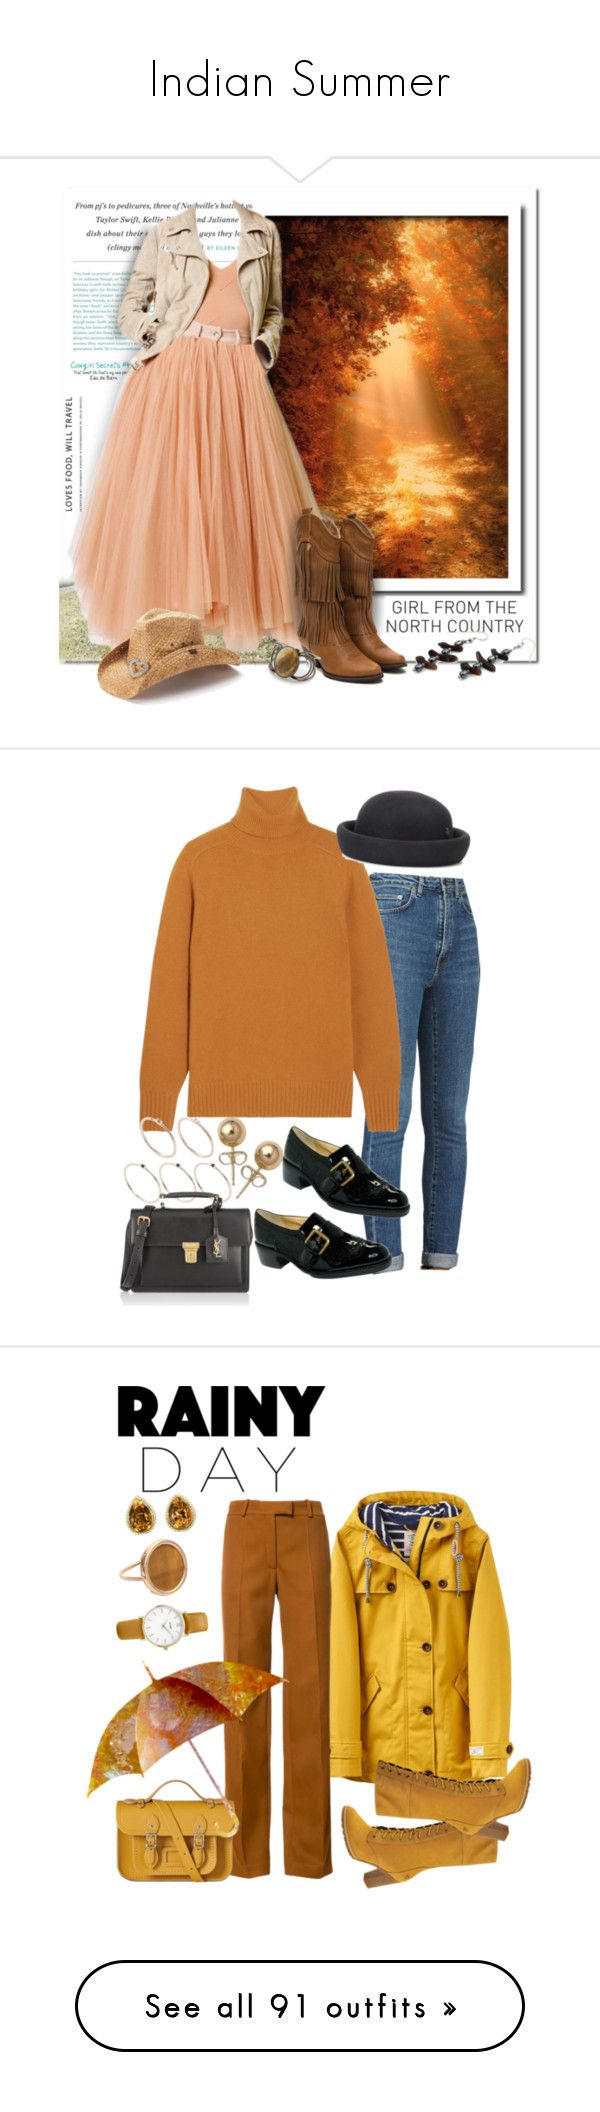 """""""Indian Summer"""" by fashionundercovergirl ❤ liked on Polyvore featuring JULIANNE, Jean-Paul Gaultier, Peter Grimm, modern, country, Yves Saint Laurent, Chloé, Joan & David, Pieces and Maison Michel"""